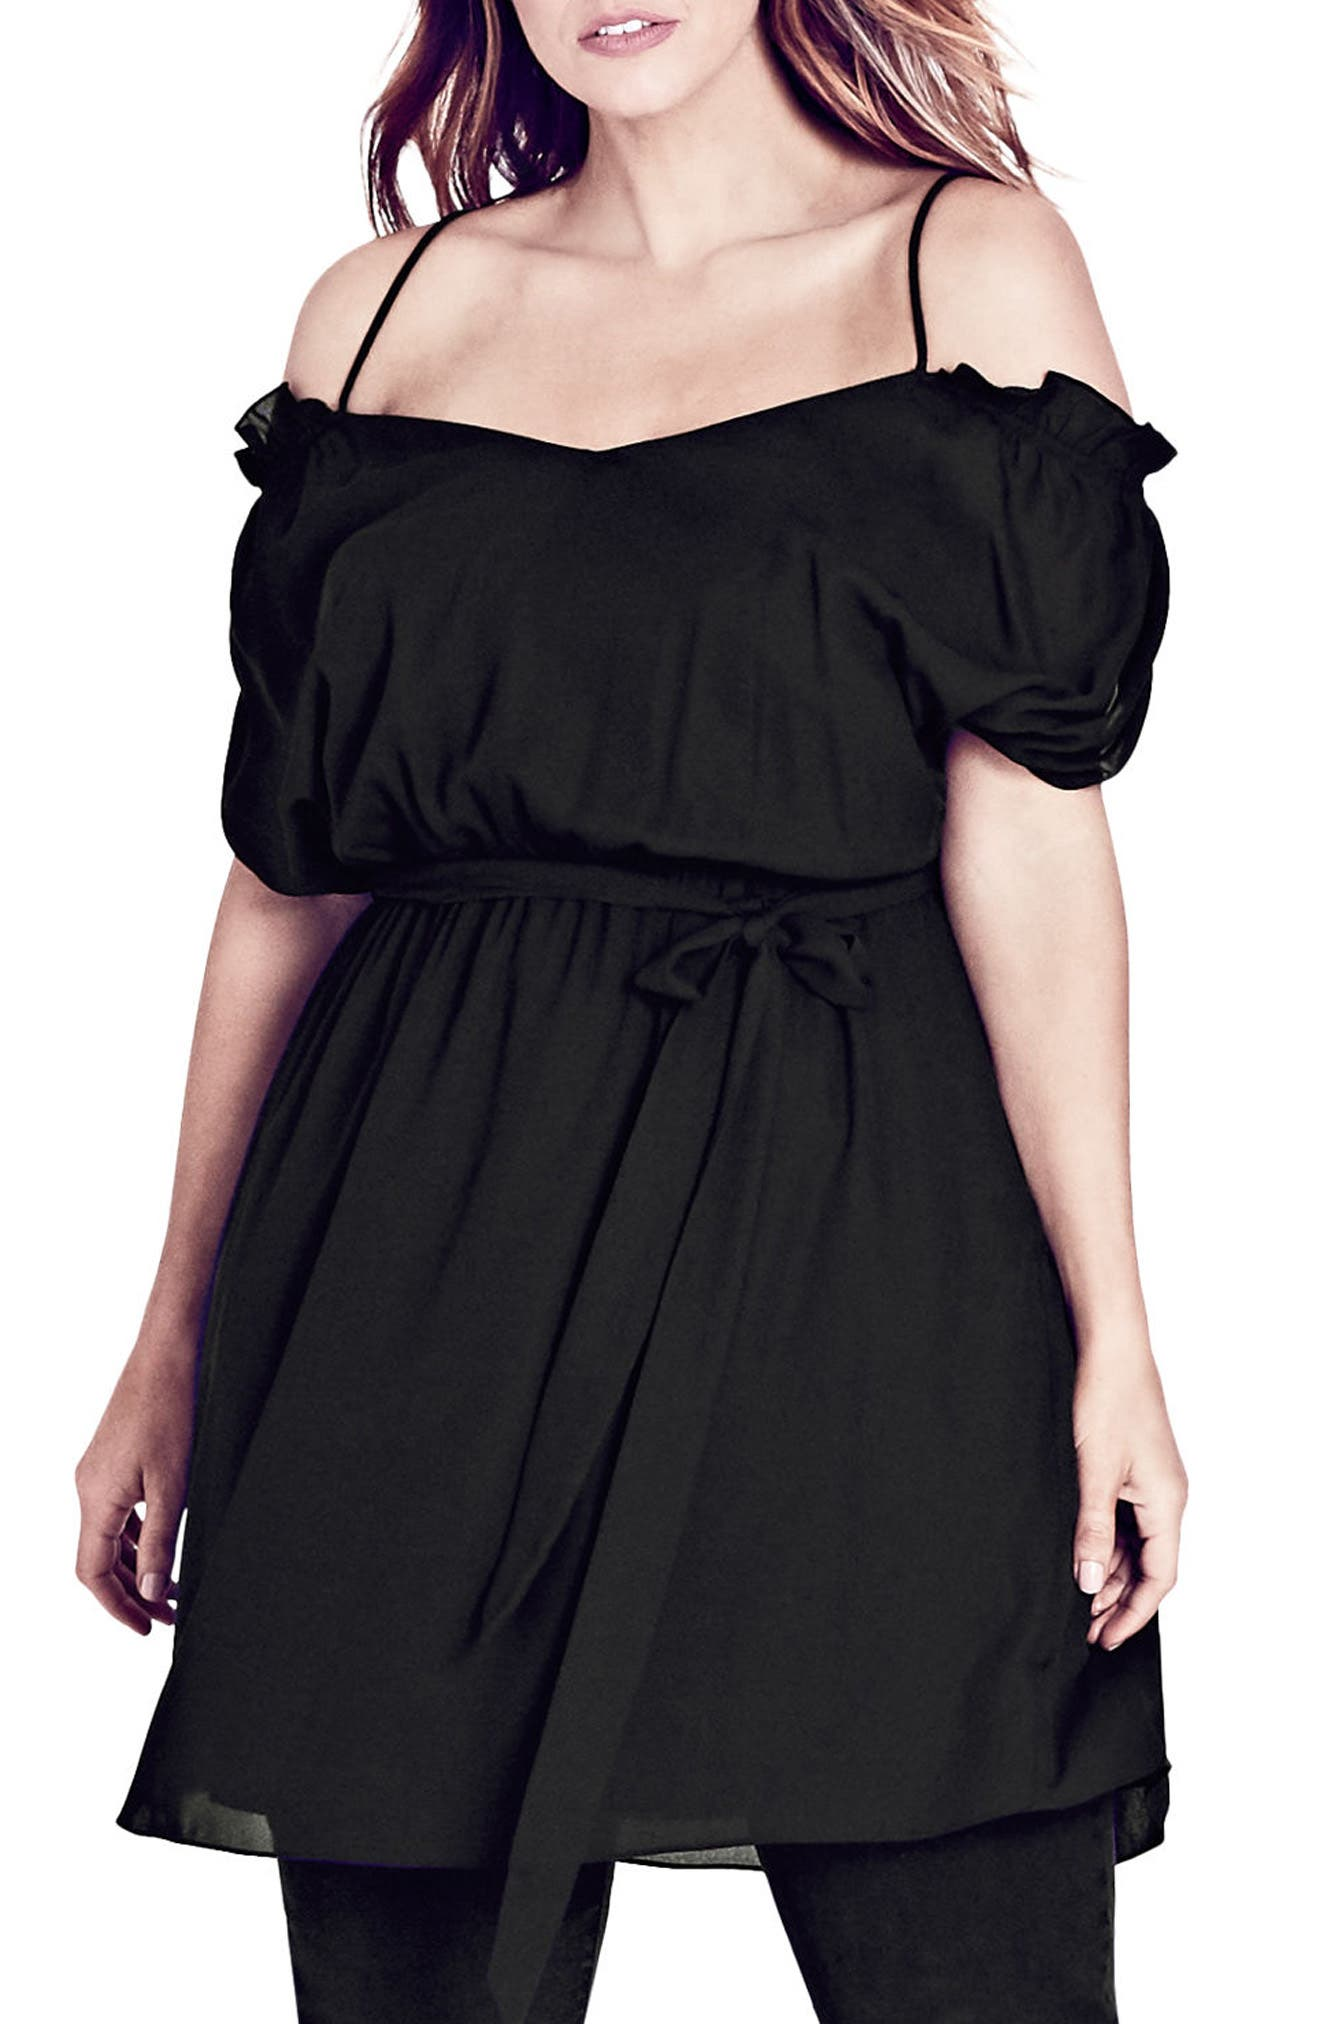 Alternate Image 1 Selected - City Chic Strapped Up Tunic (Plus Size)